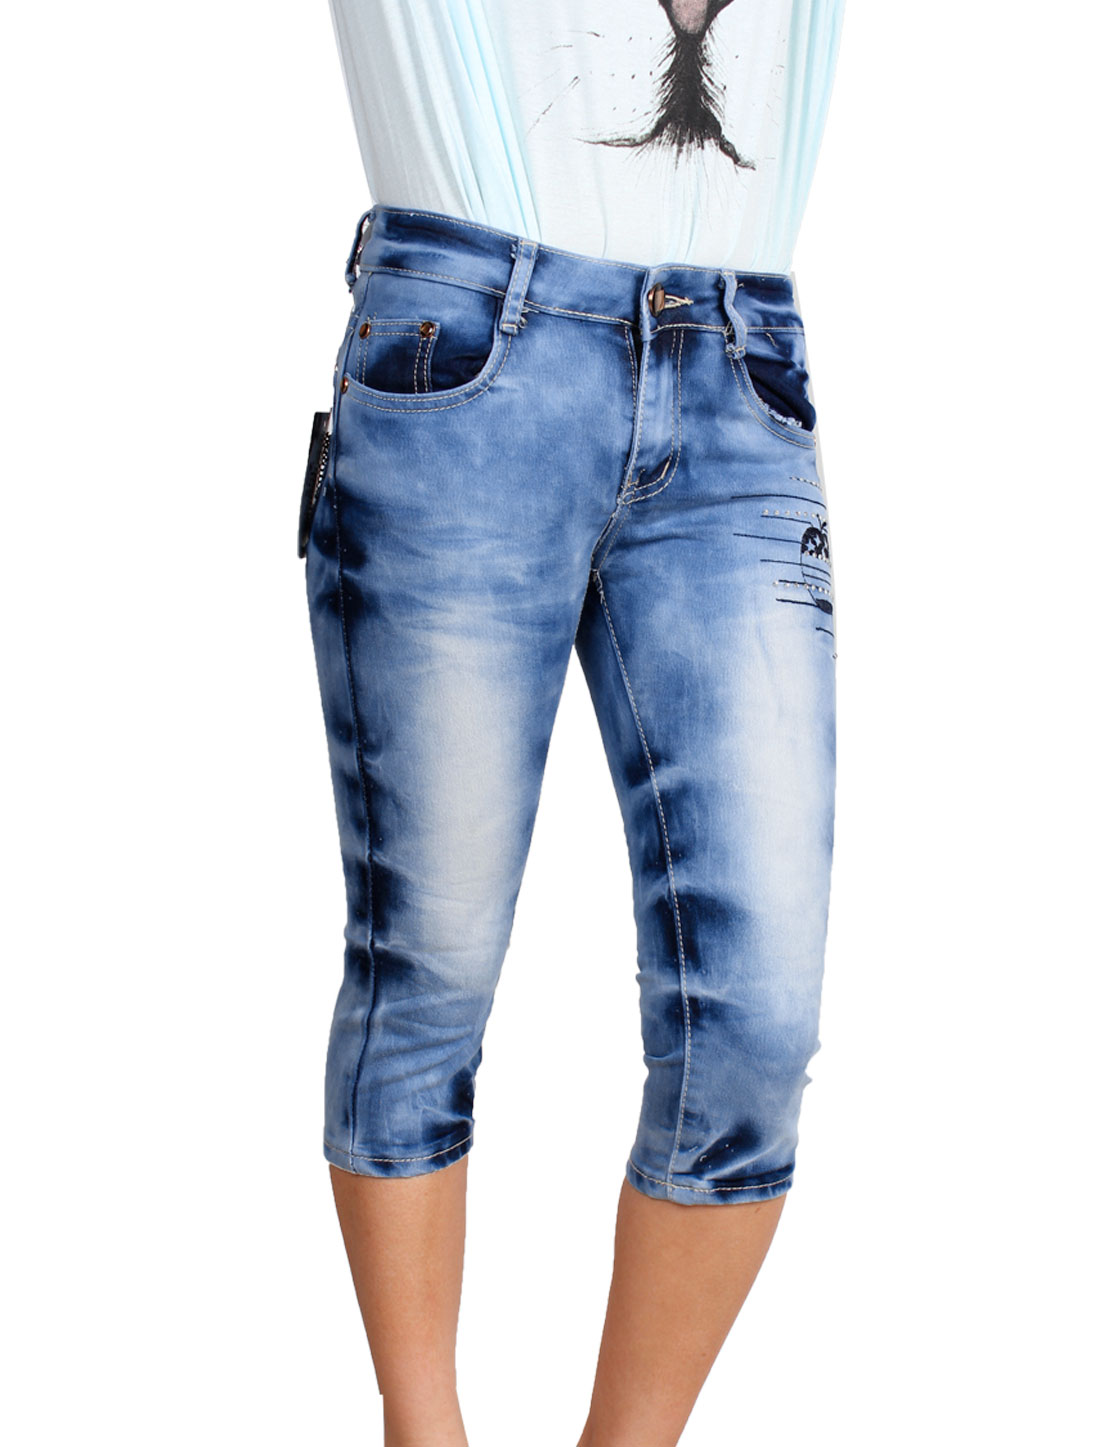 Women Chain Decor Back Pocket Low Waist Button Closure Cropped Jeans Blue S